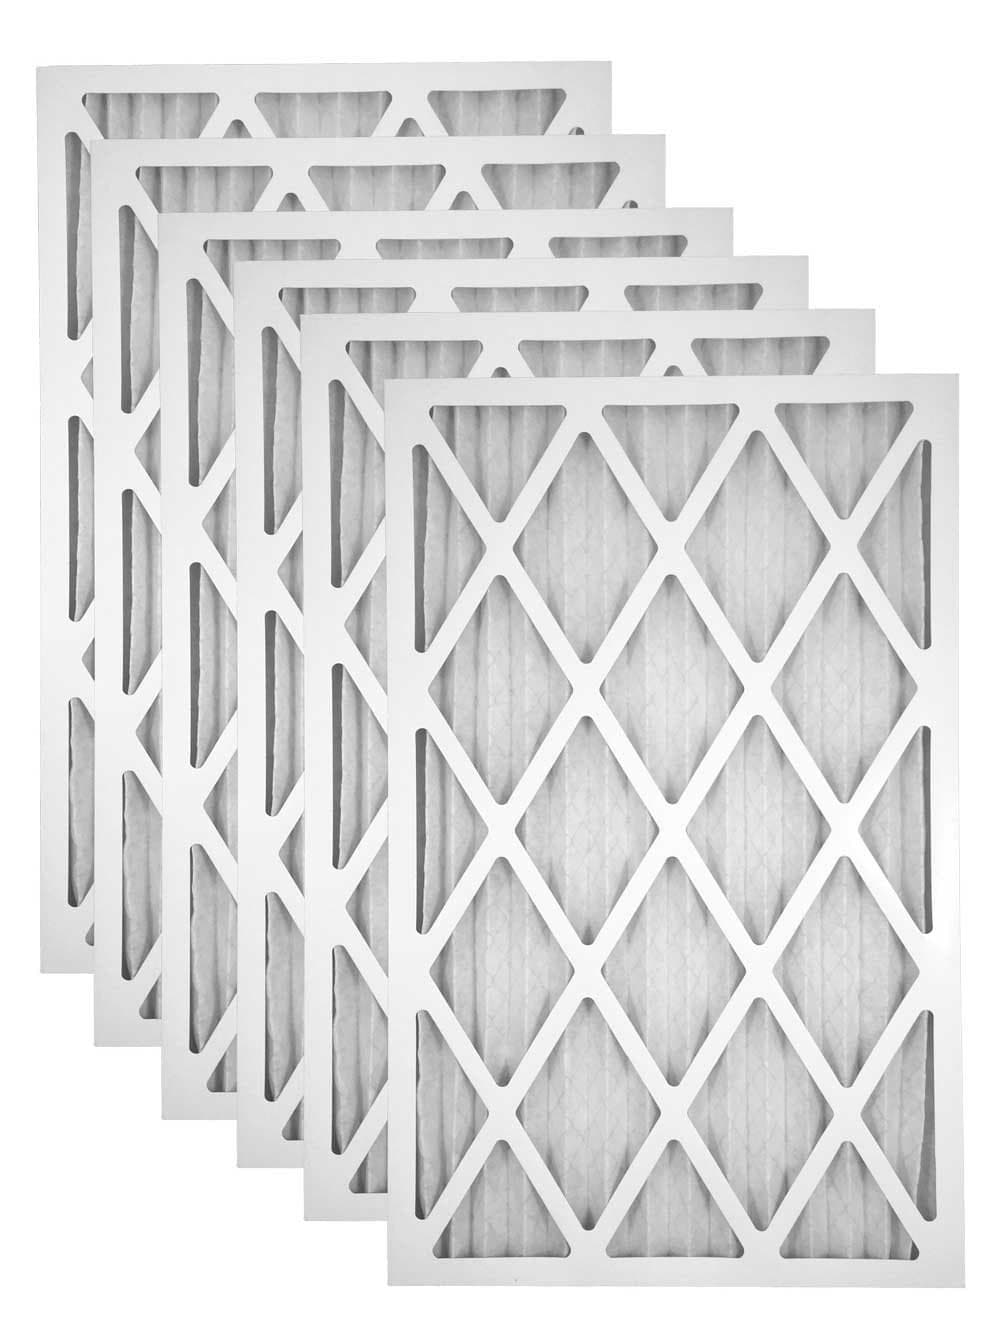 15x25x1 Merv 8 Pleated AC Furnace Filter - Case of 6